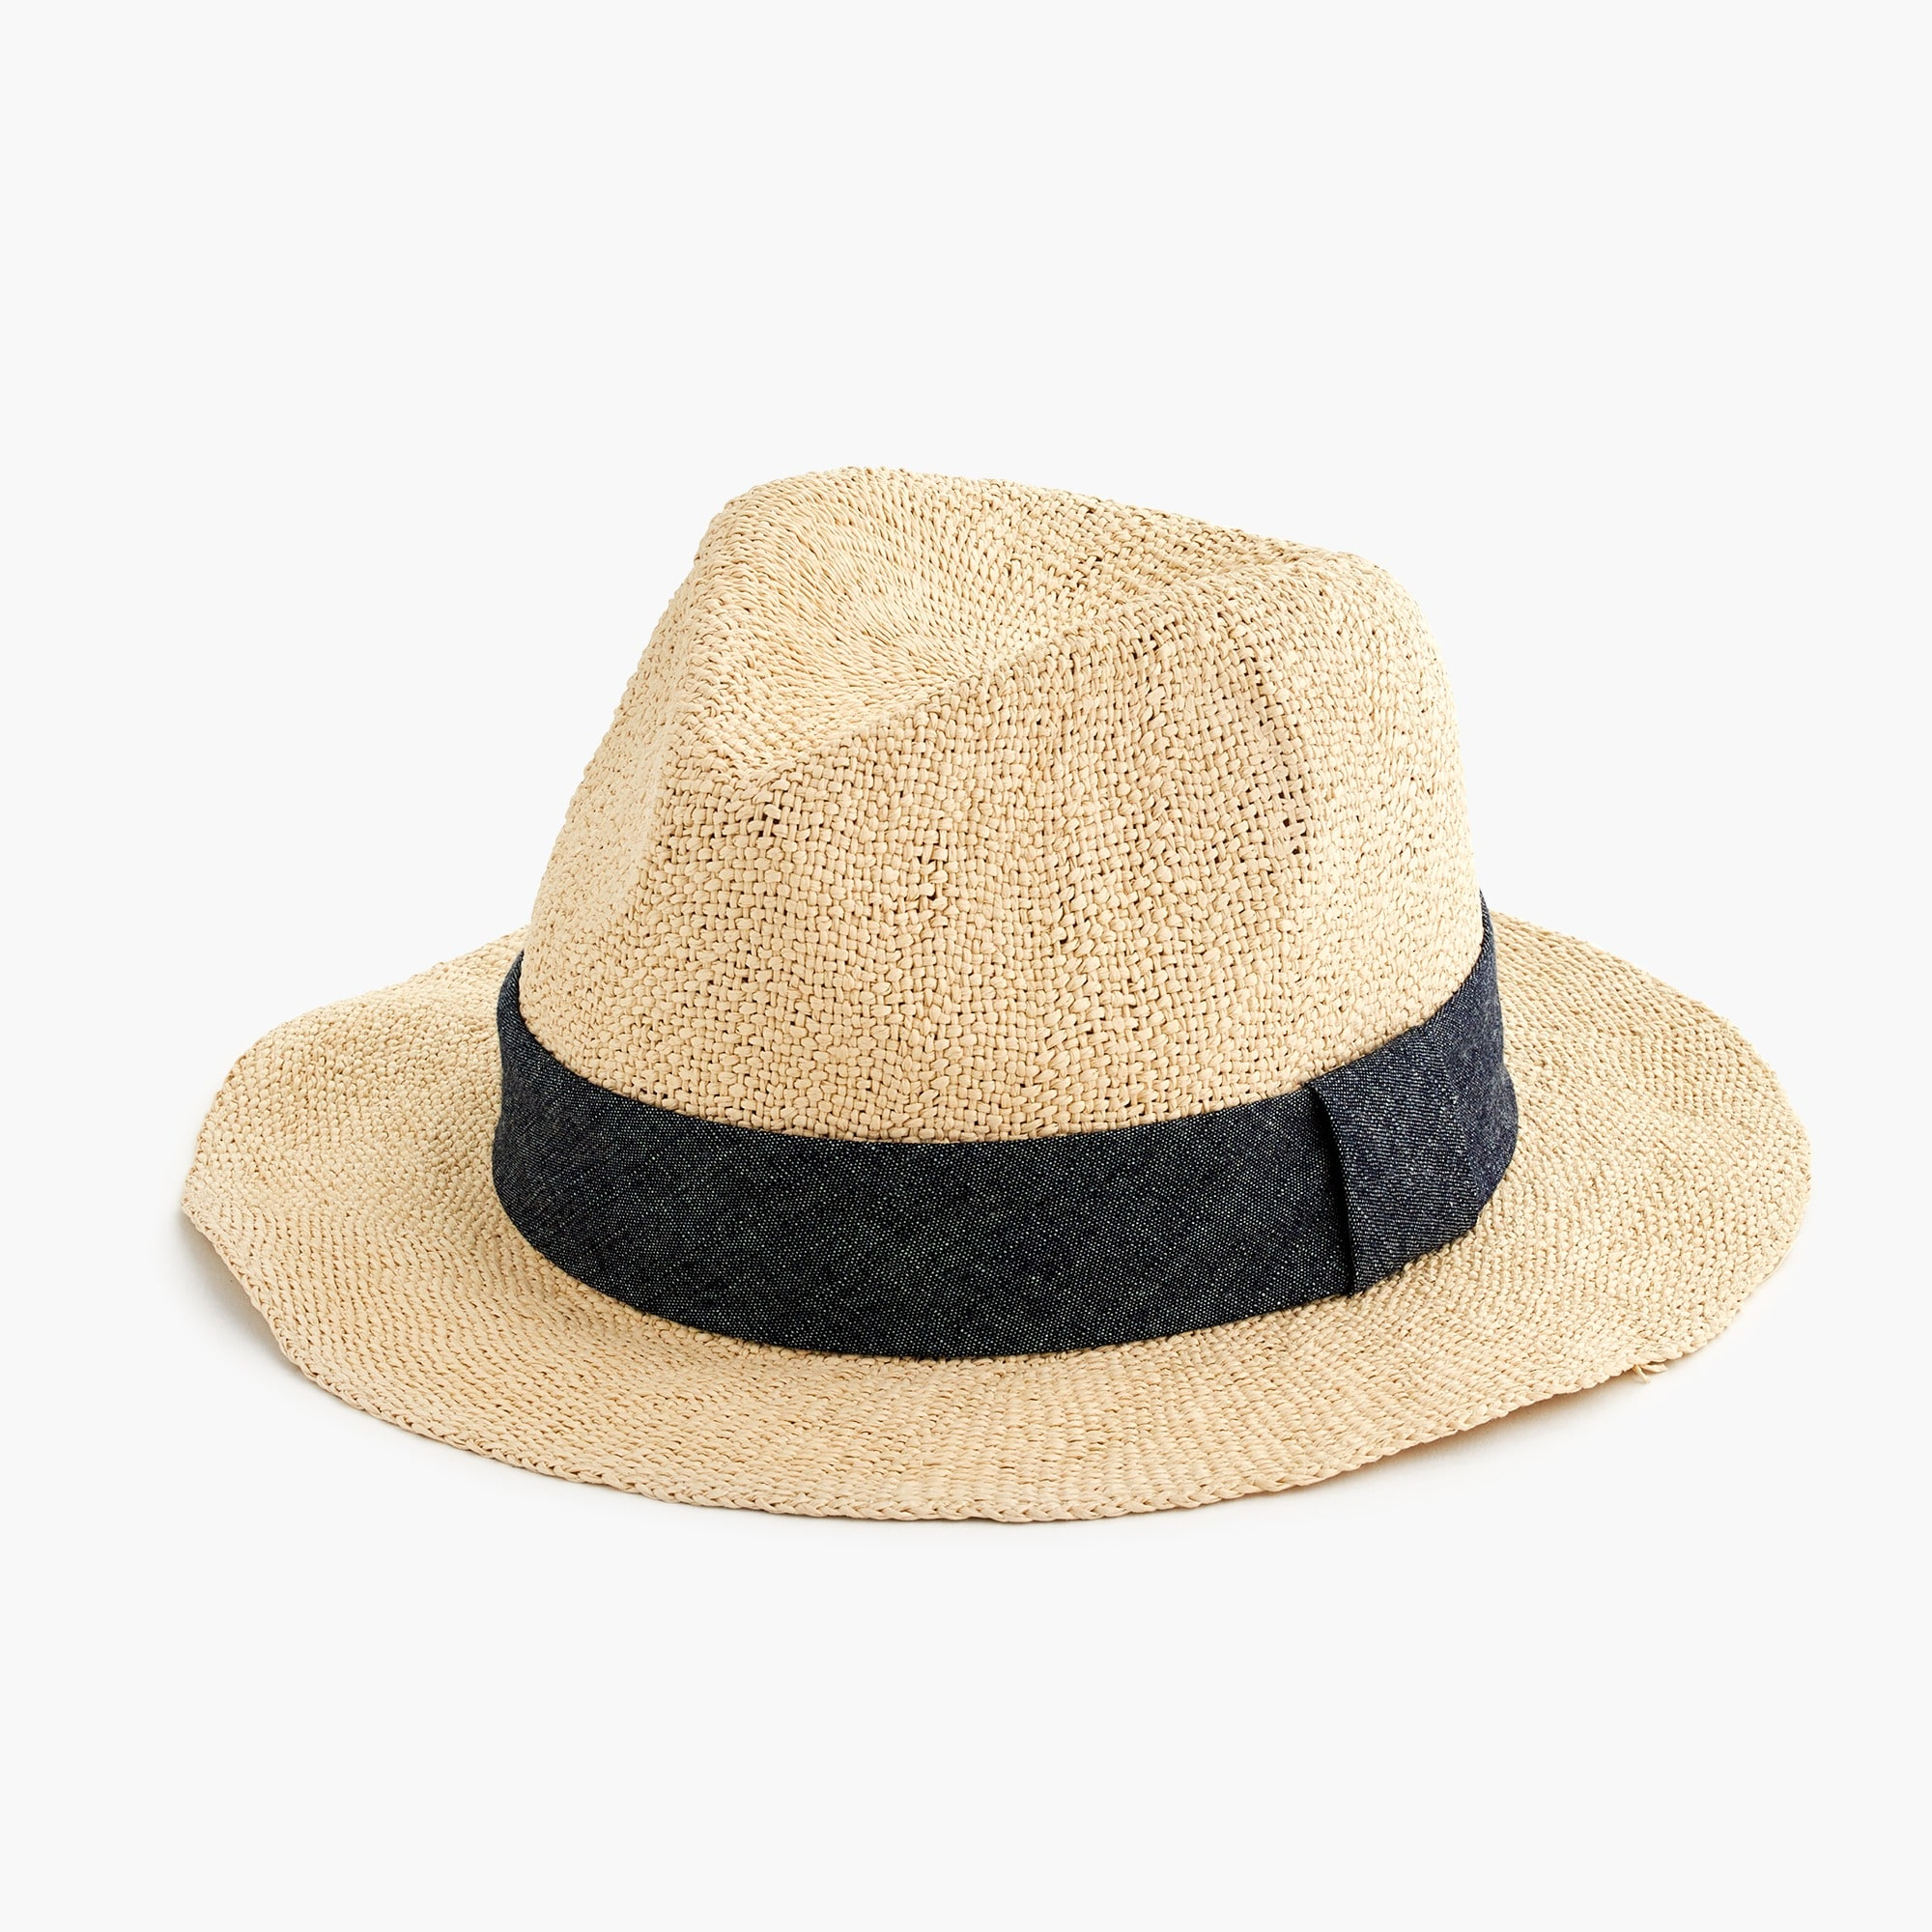 Image 1 for Packable panama hat